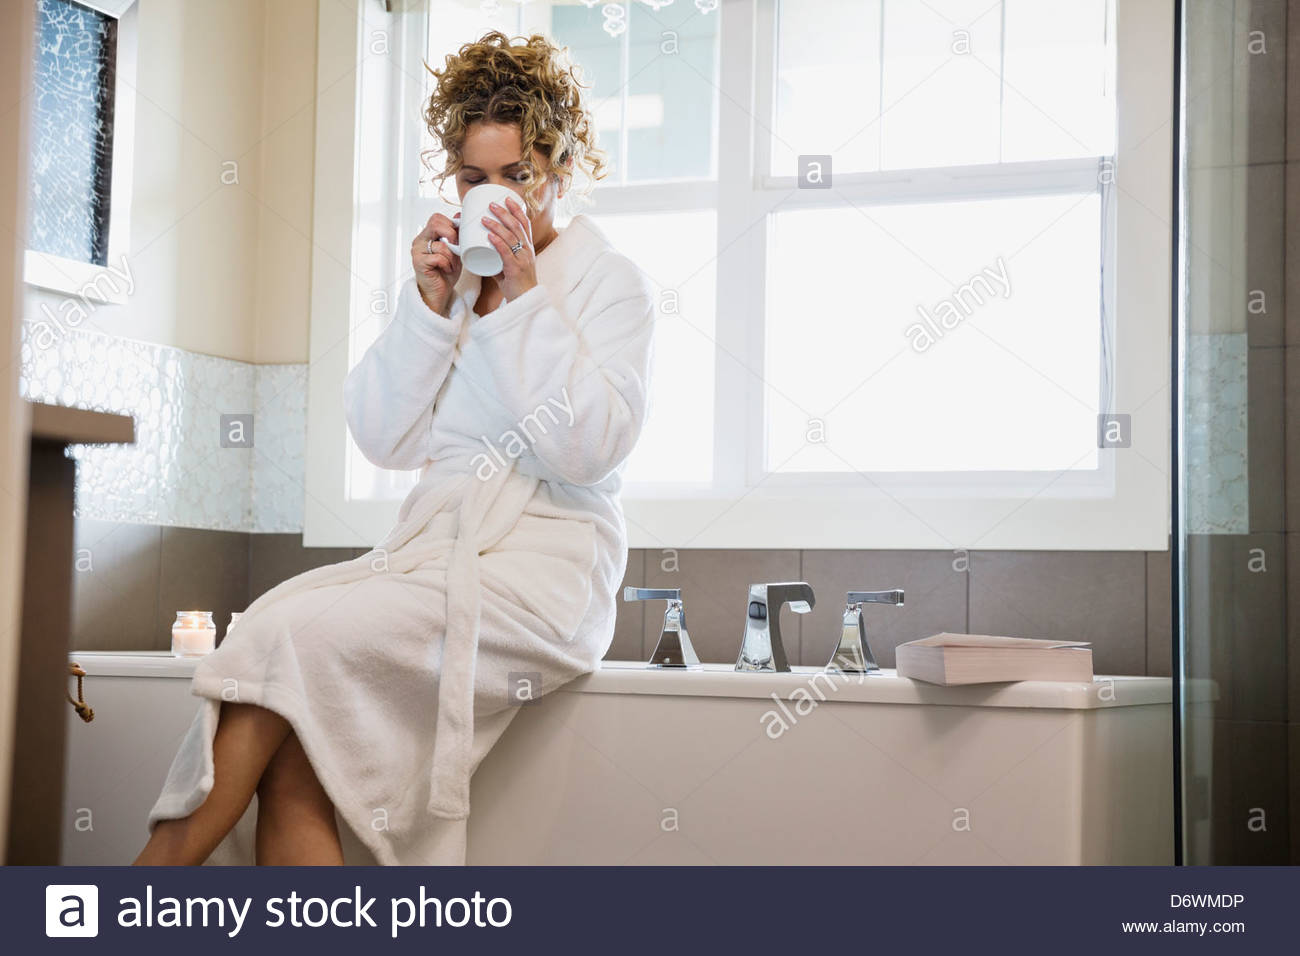 Mature woman in bathrobe drinking coffee while sitting on bathtub - Stock Image